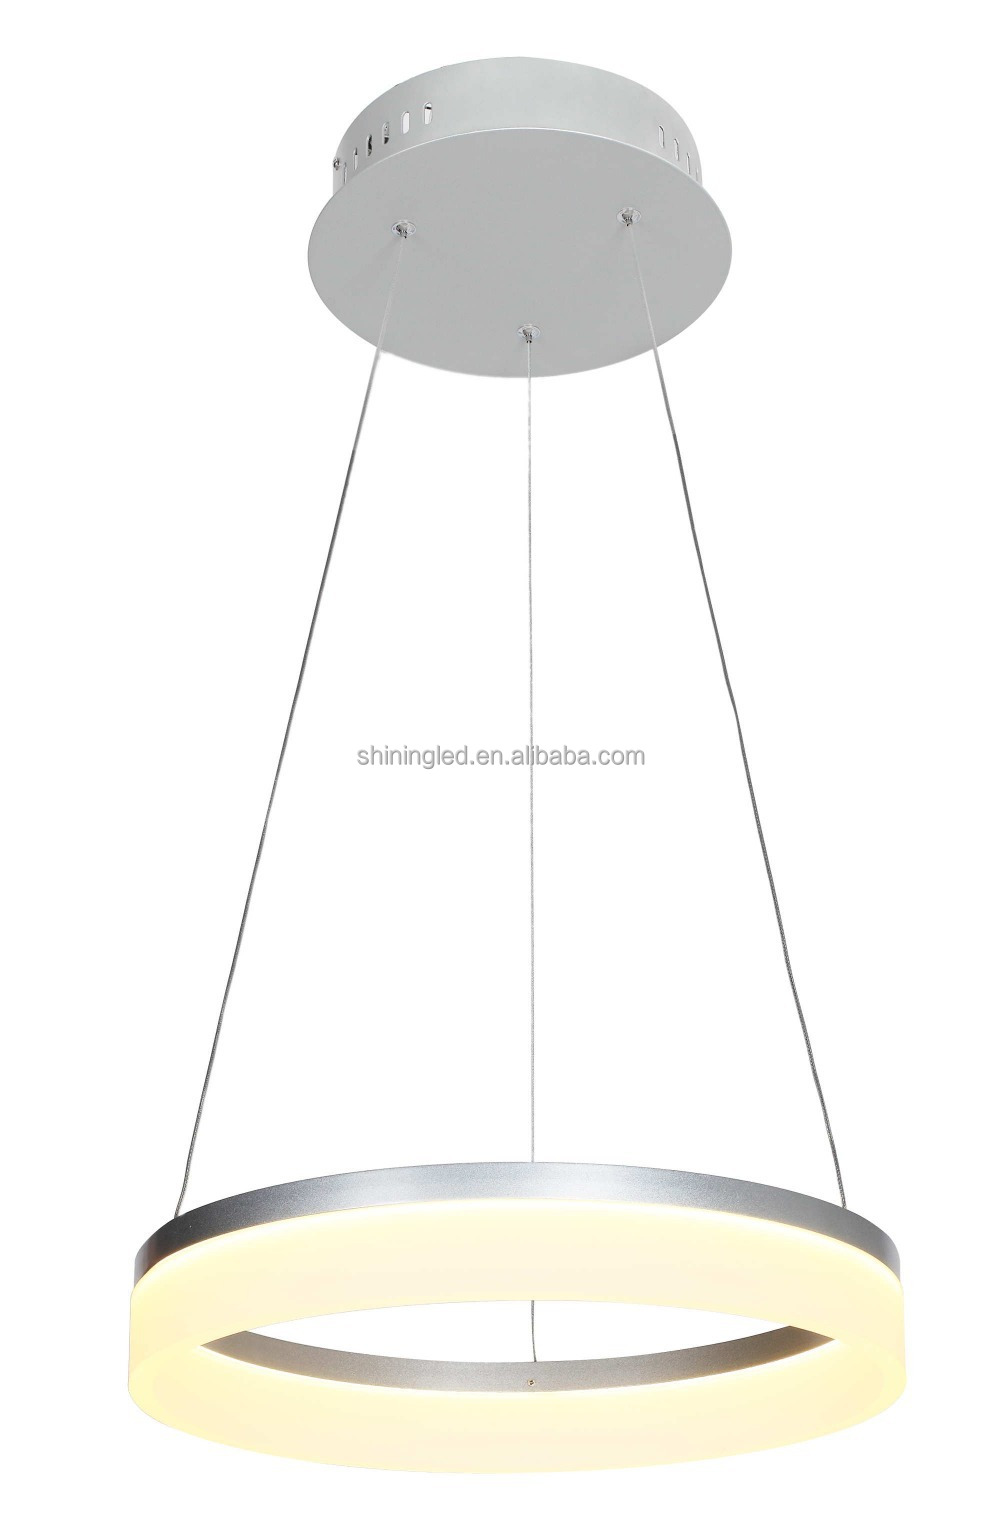 Modern lamp led white one ring shaped acrylic and Aluminum pendant light adjustable hanging chandelier lighting fixture